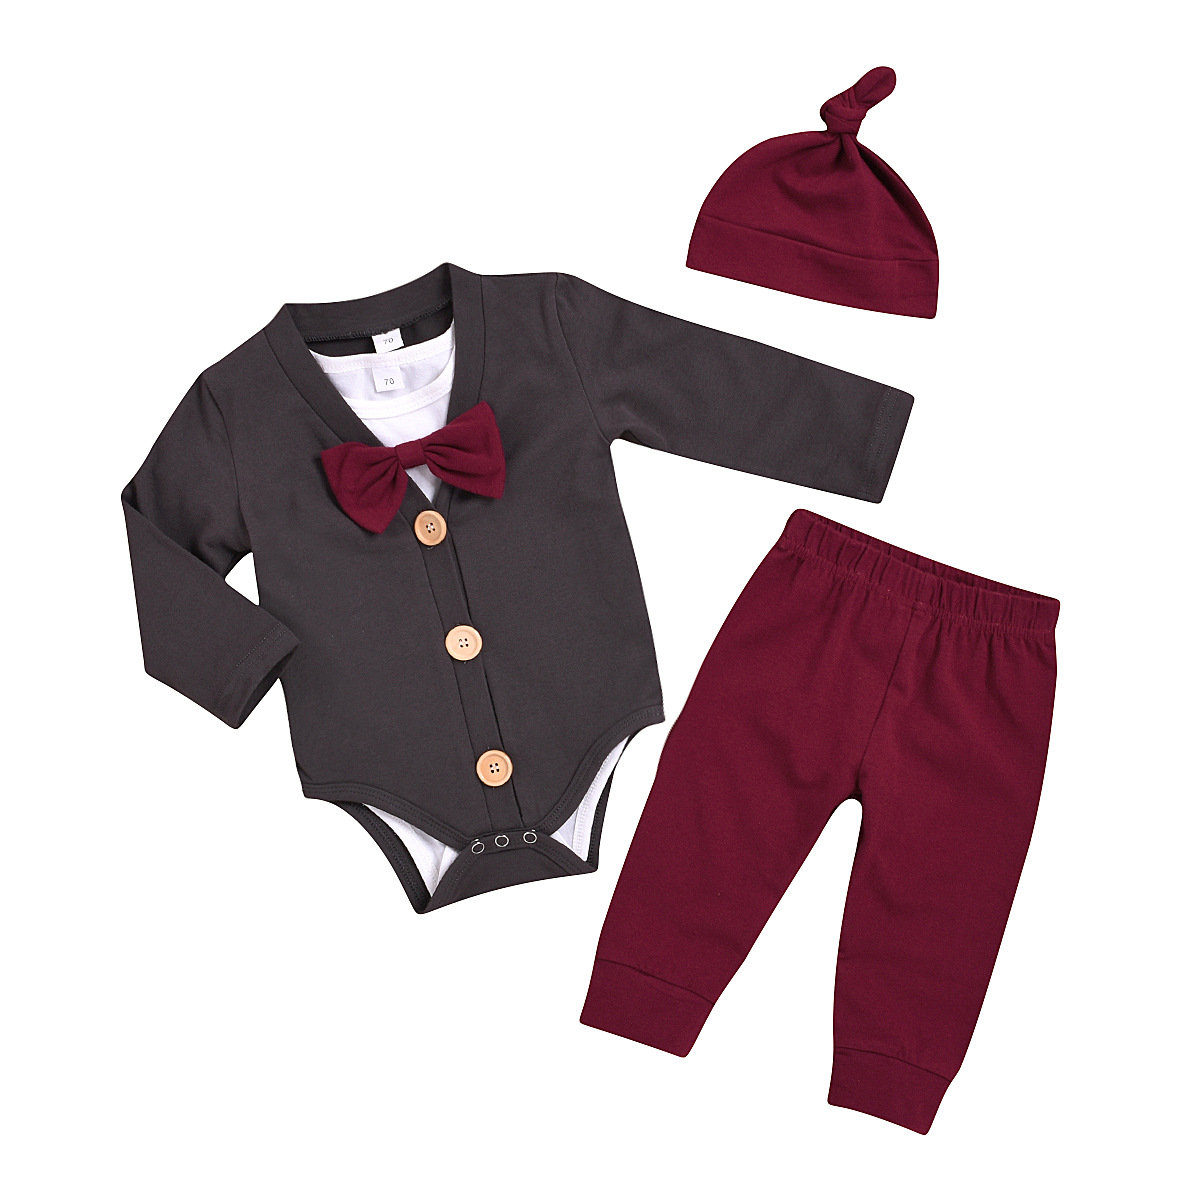 4PCs Baby Boys Gentleman Long Sleeves Rompers Set For 0-24M